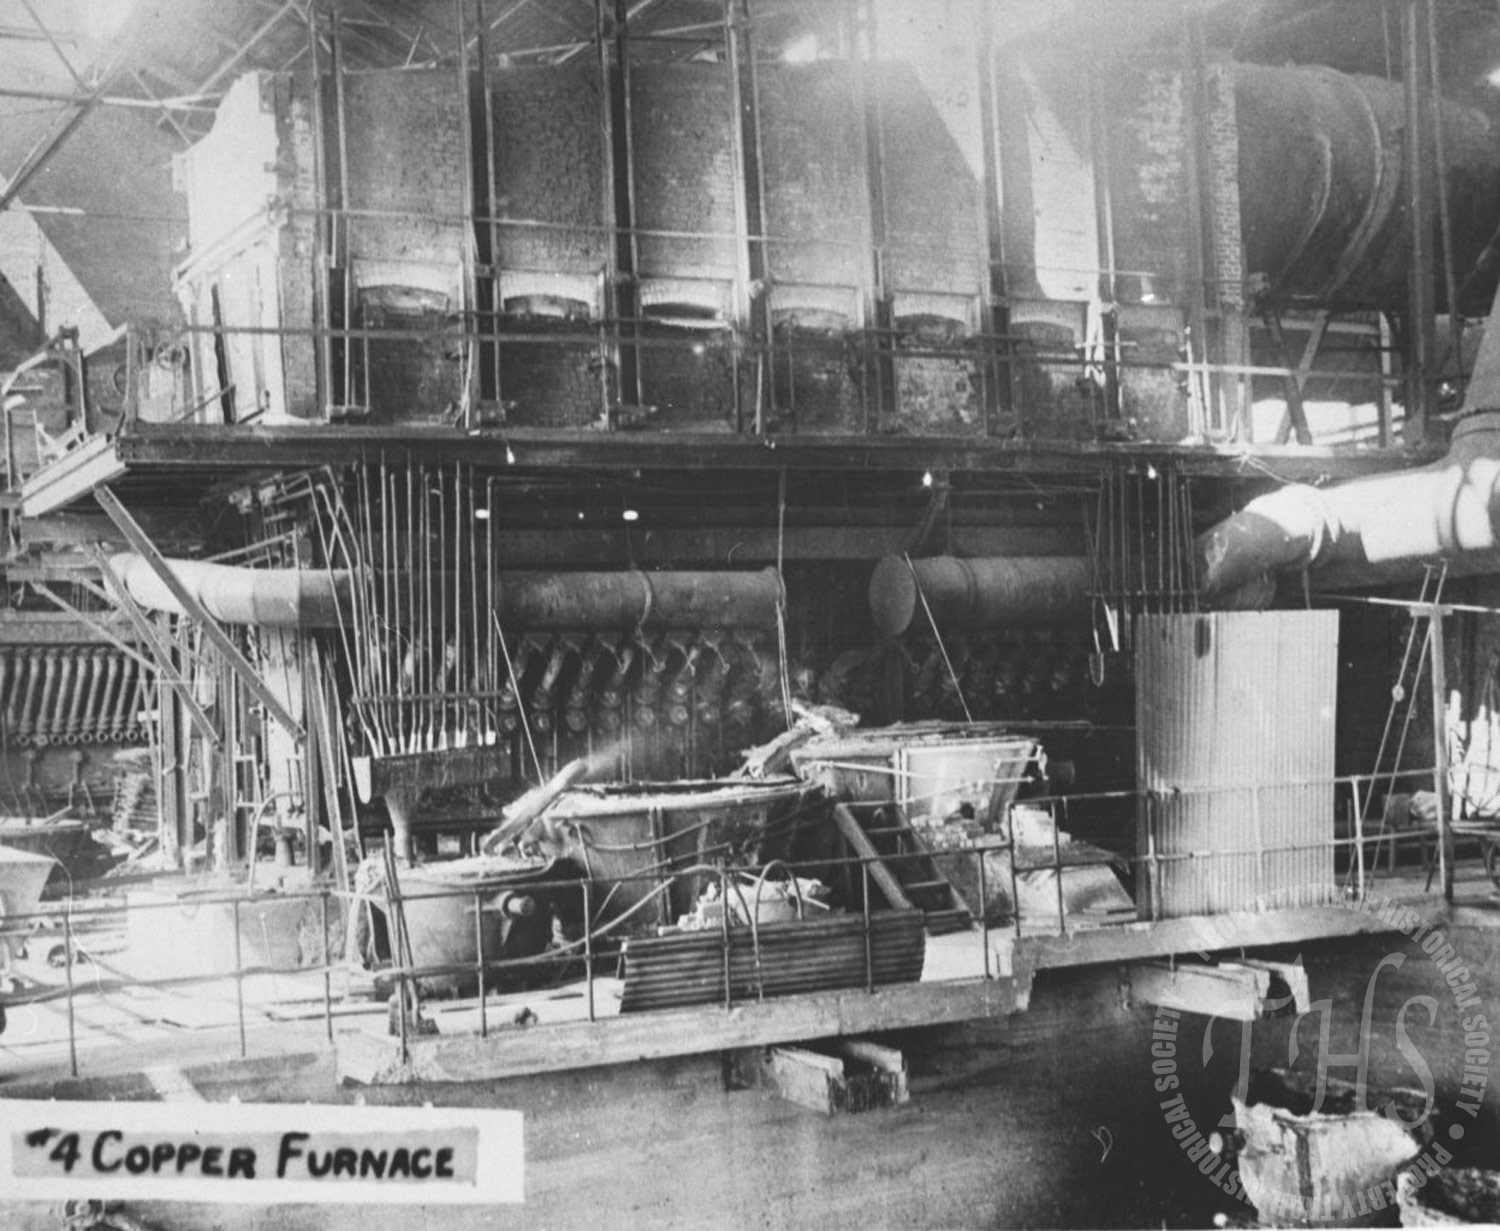 Trail's #4 Copper Furnace (Hughes) - 1920